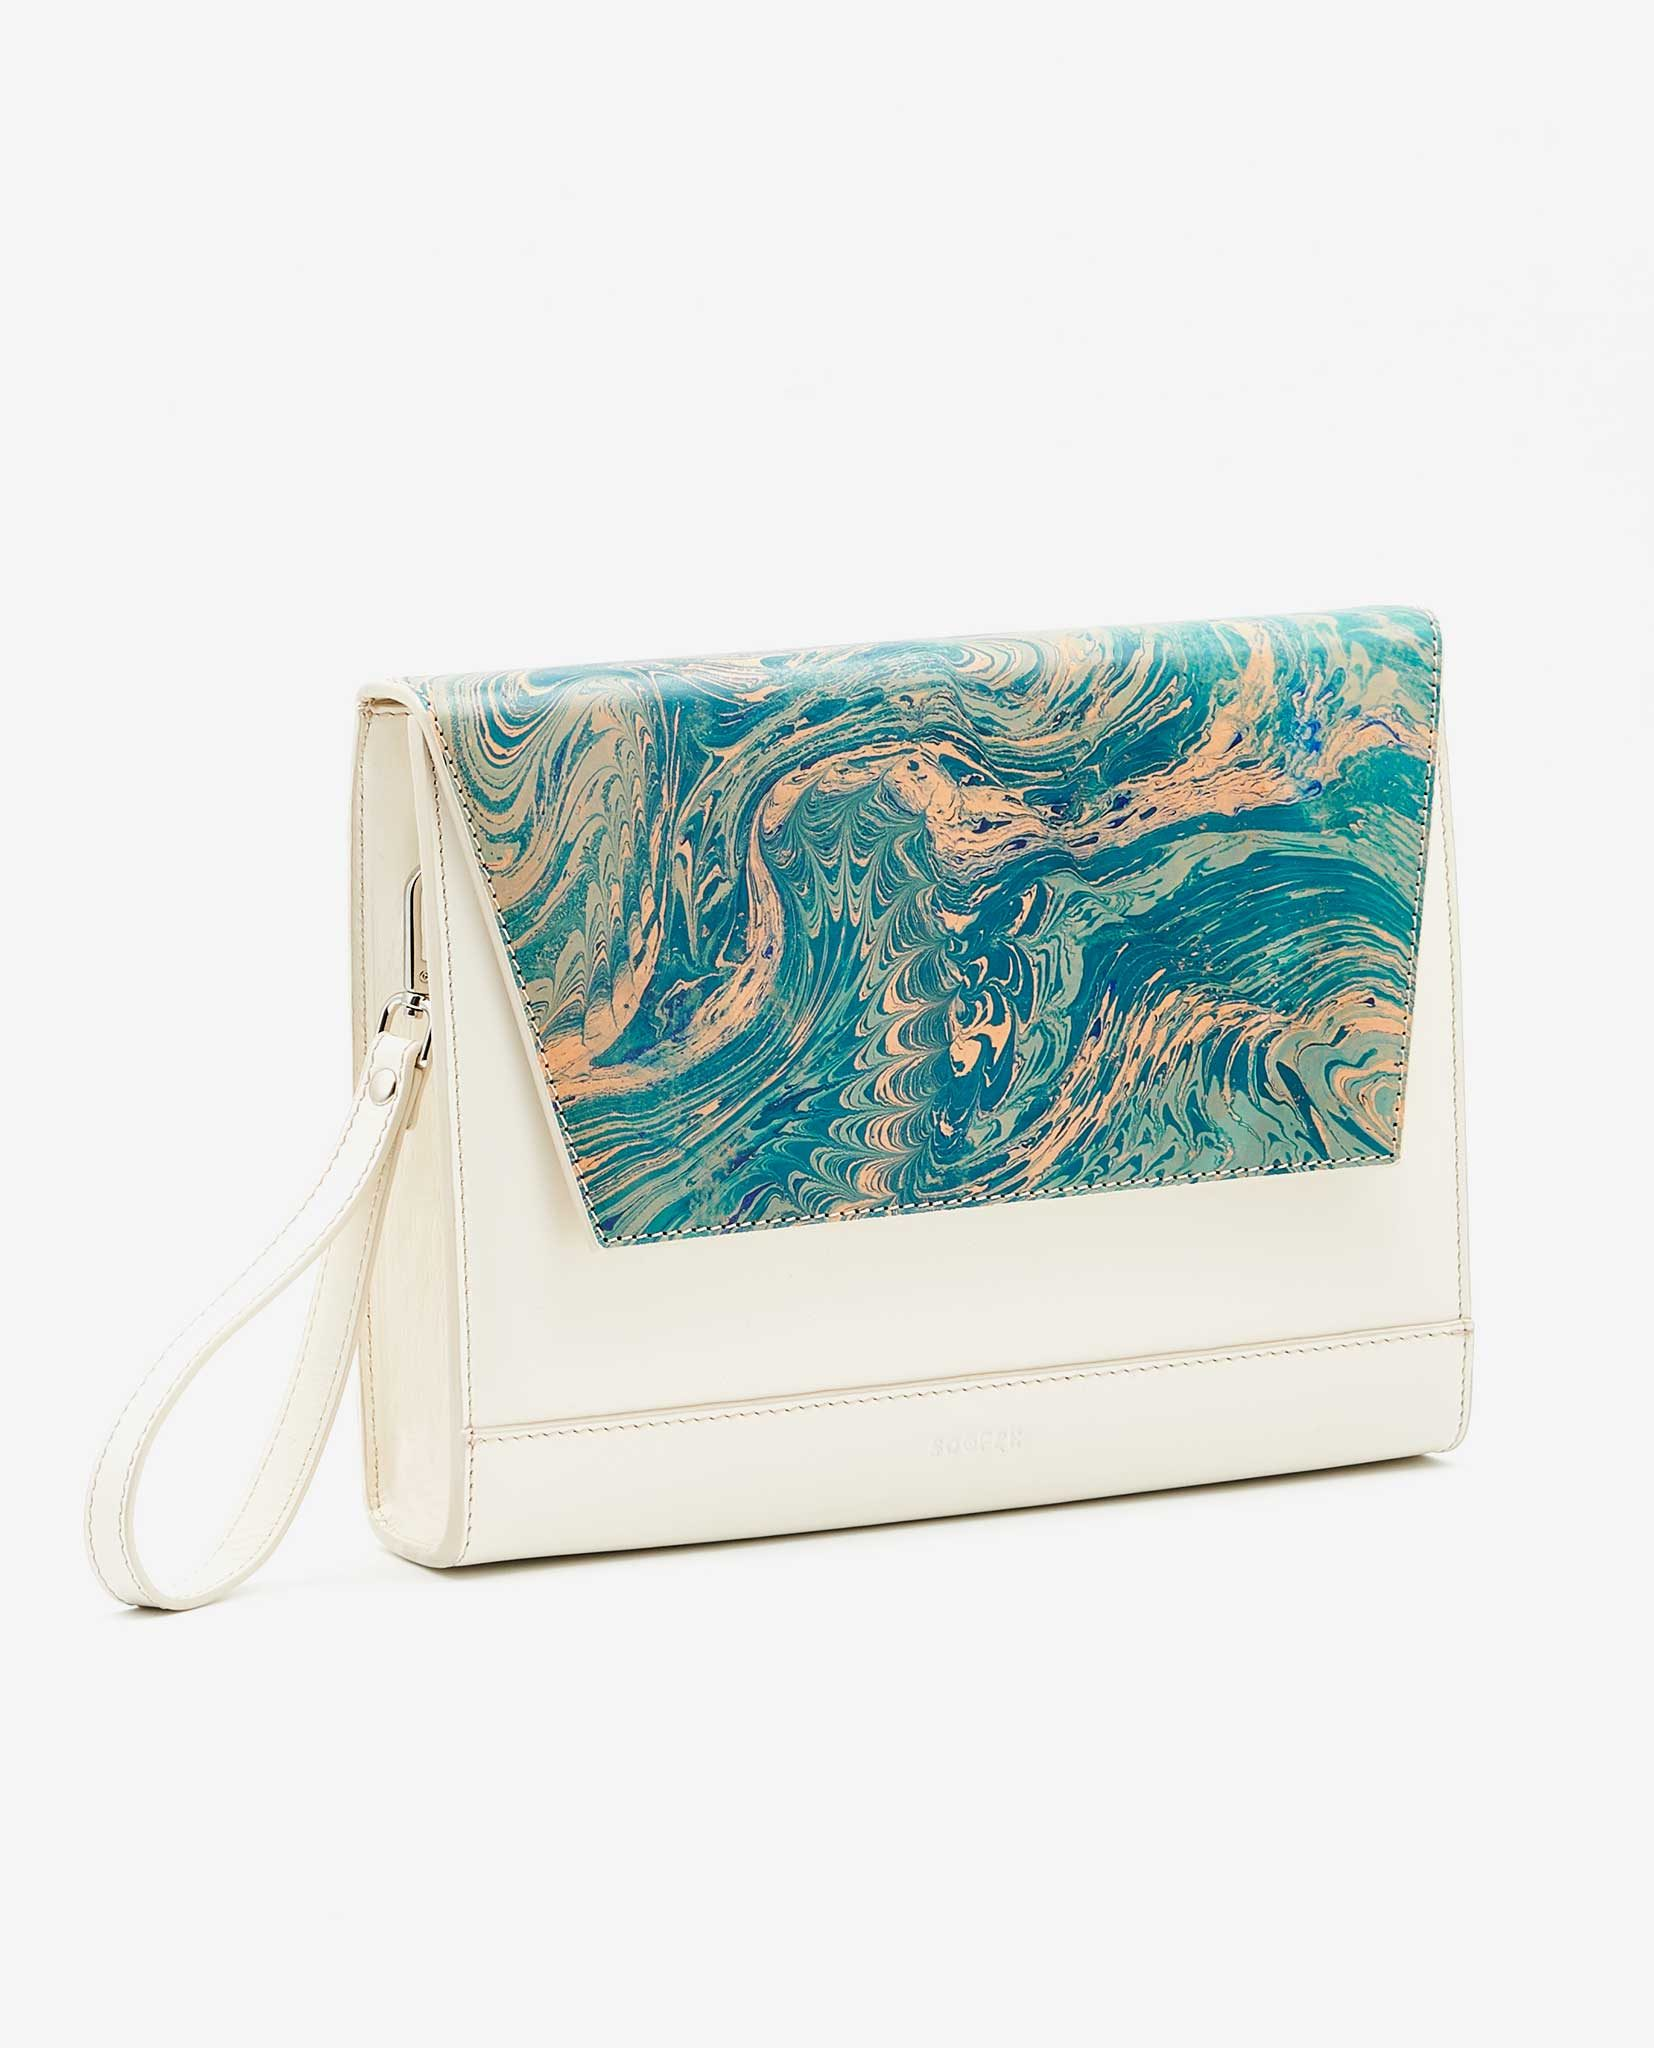 SOOFRE Berlin unique Clutch marble turquoise ivory